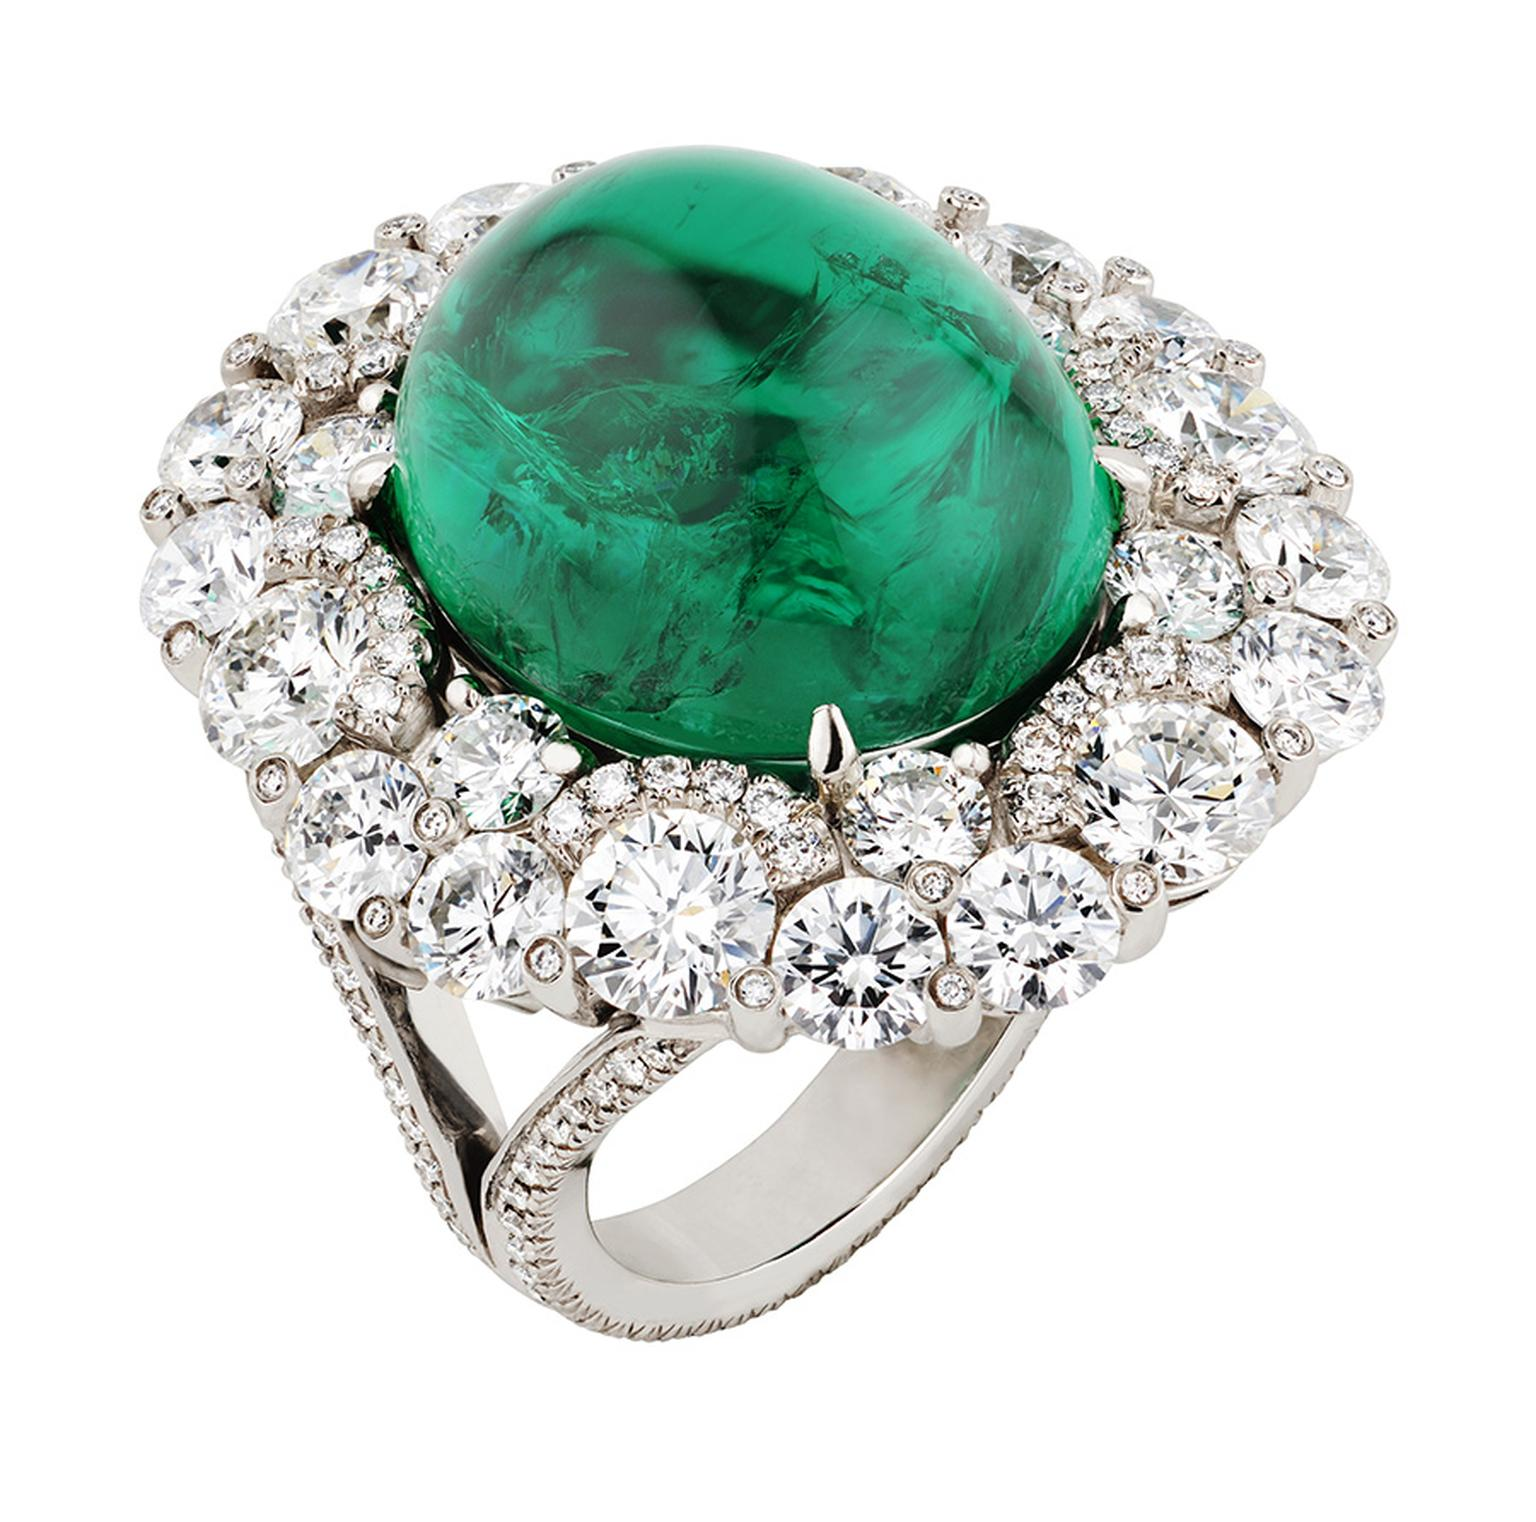 Fabergé Solyanka 14.5ct emerald ring set in platinum with 263 diamonds as worn by Naomi Watts at the SAG Awards 2013. The emerald is ethically sourced from Gemfields' Zambian mine.